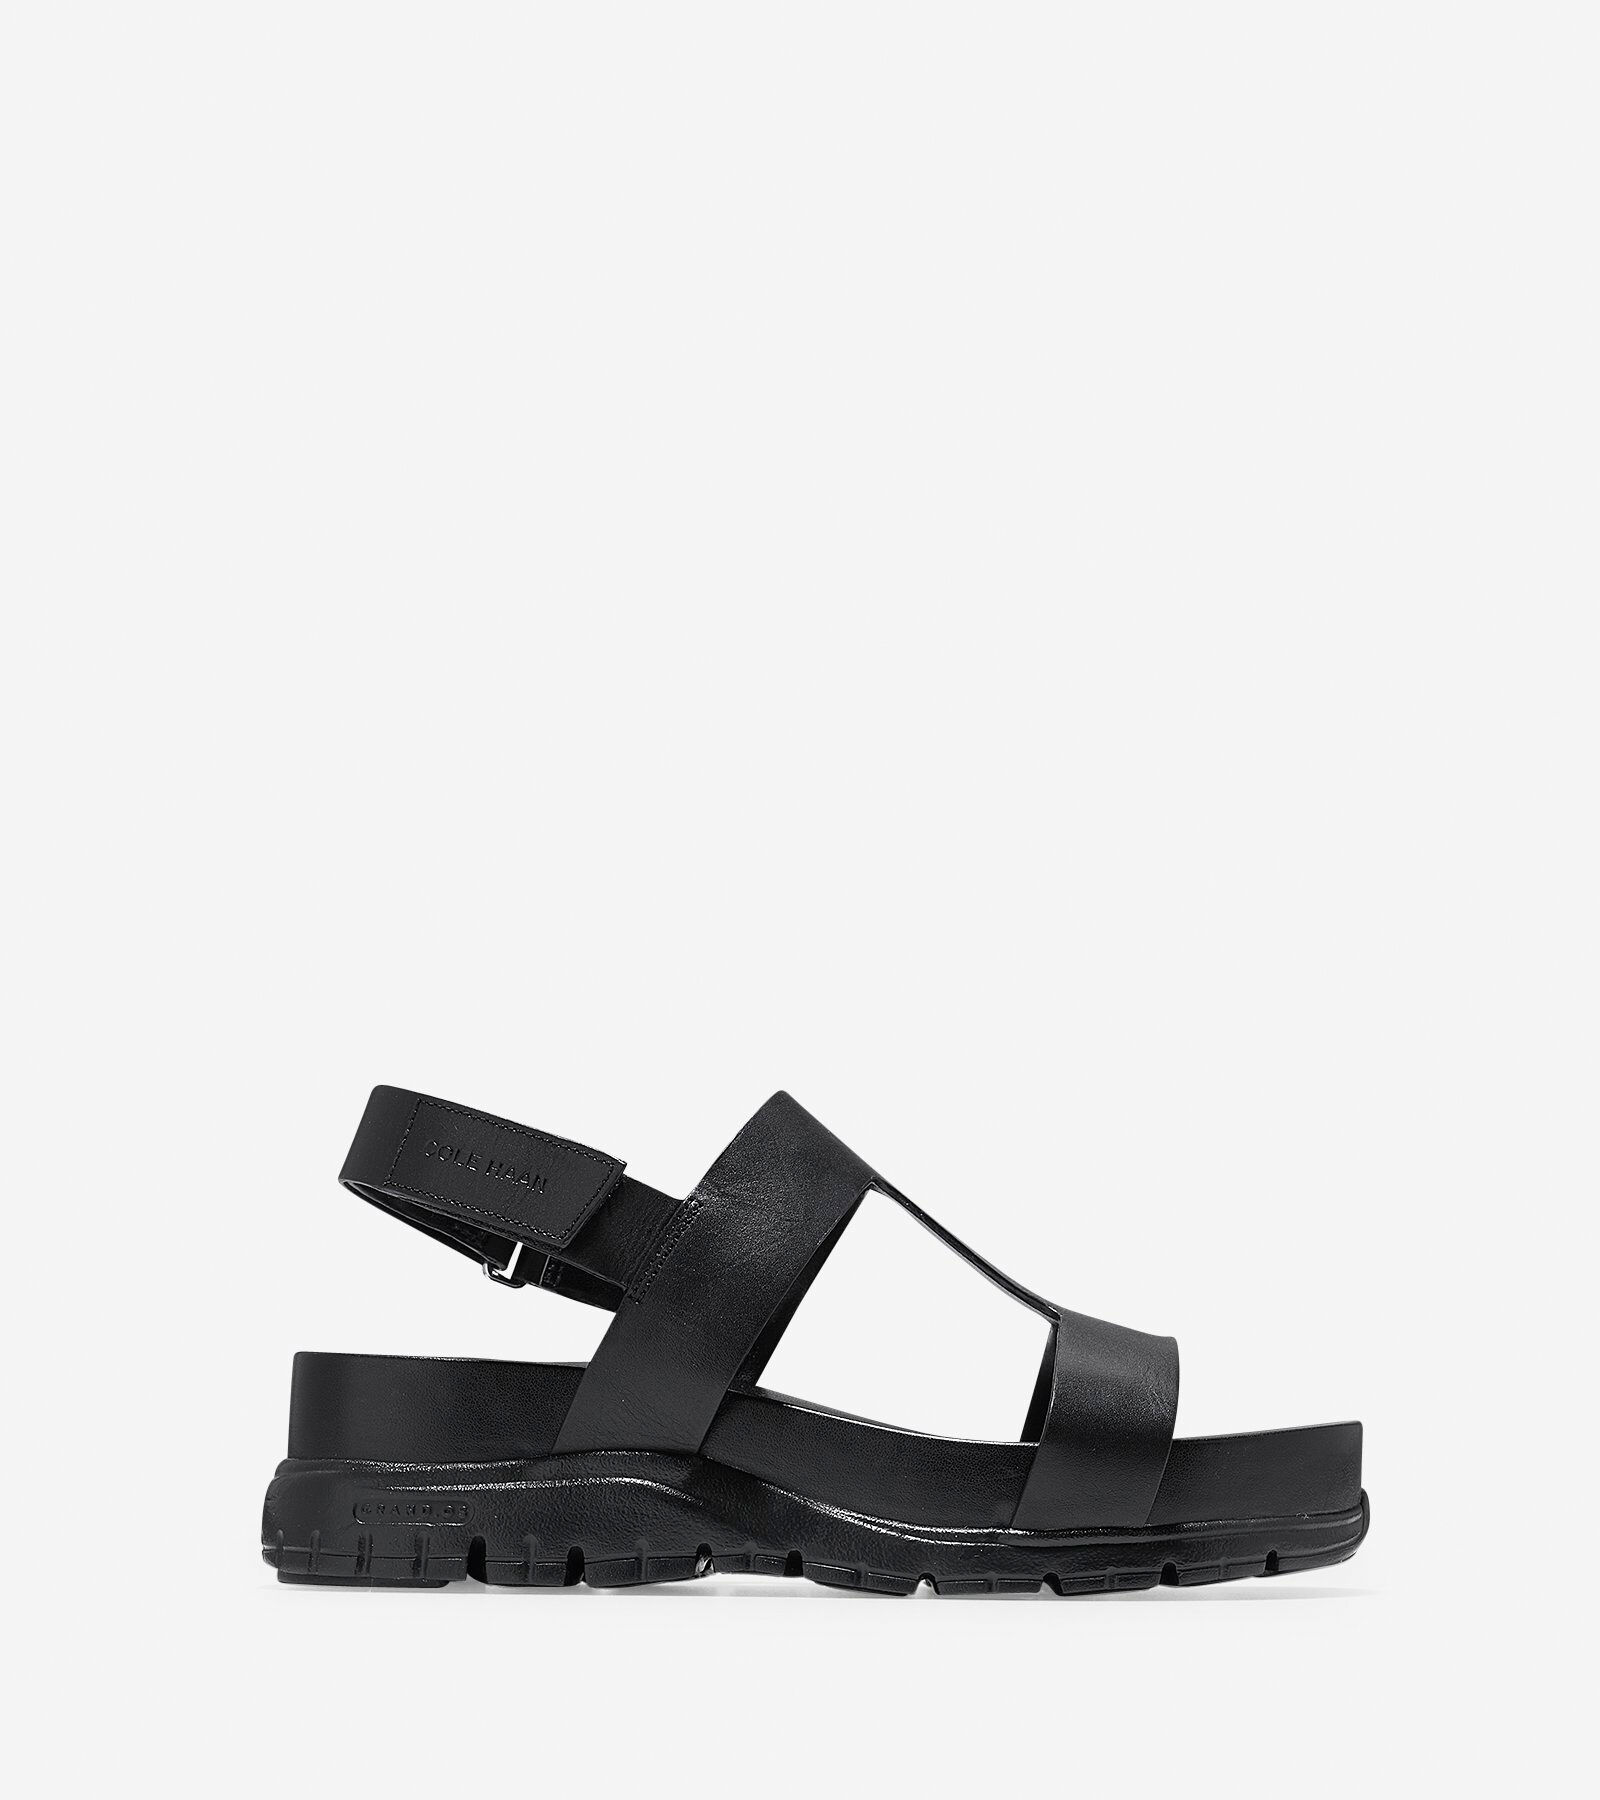 Cole Haan ZeroGrand Leather Strap Sandals vhUQ36qg0i